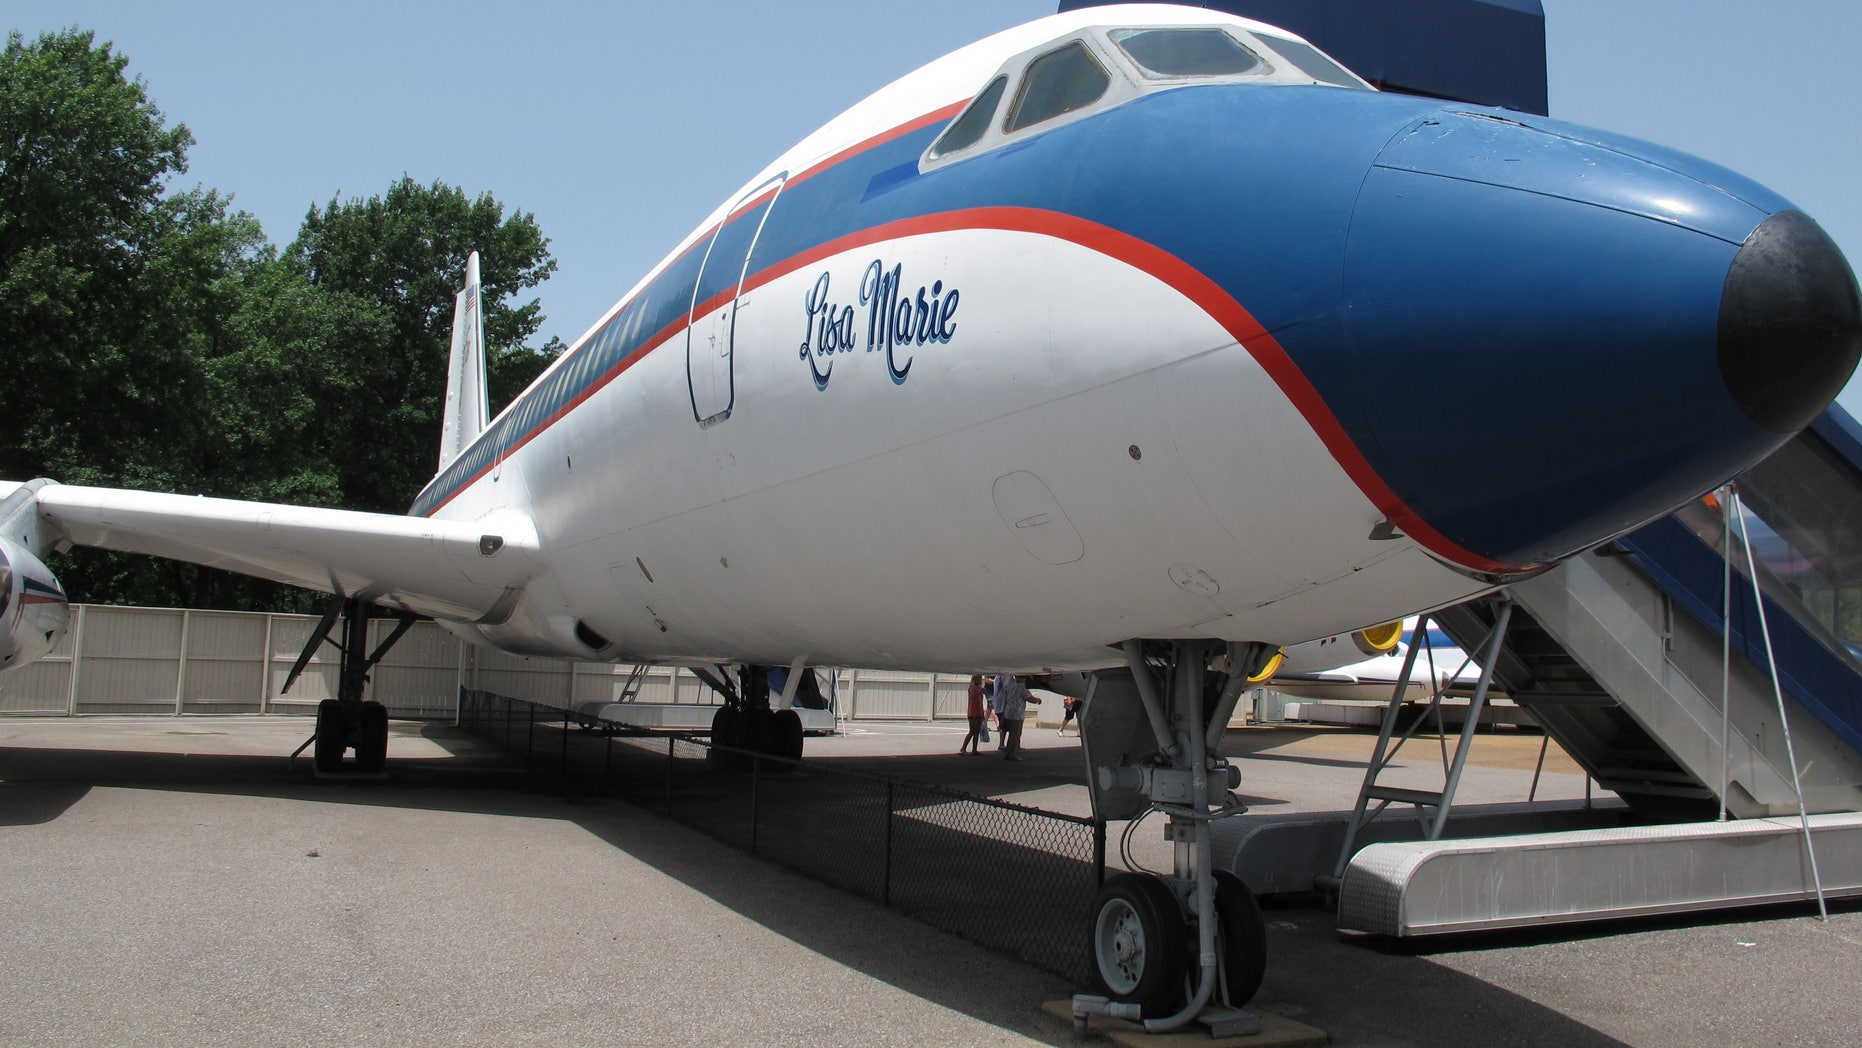 July 1, 2014. The Lisa Marie, one of two jets once owned by late singer Elvis Presley, that is used as a tourist exhibit at the Graceland tourist attraction in Memphis, Tenn. The company that operates the Graceland tourist attraction has told the current owners of the Lisa Marie, and another plane called the Hound Dog II, that it wants the planes removed from Graceland by late April 2015, or shortly afterward.